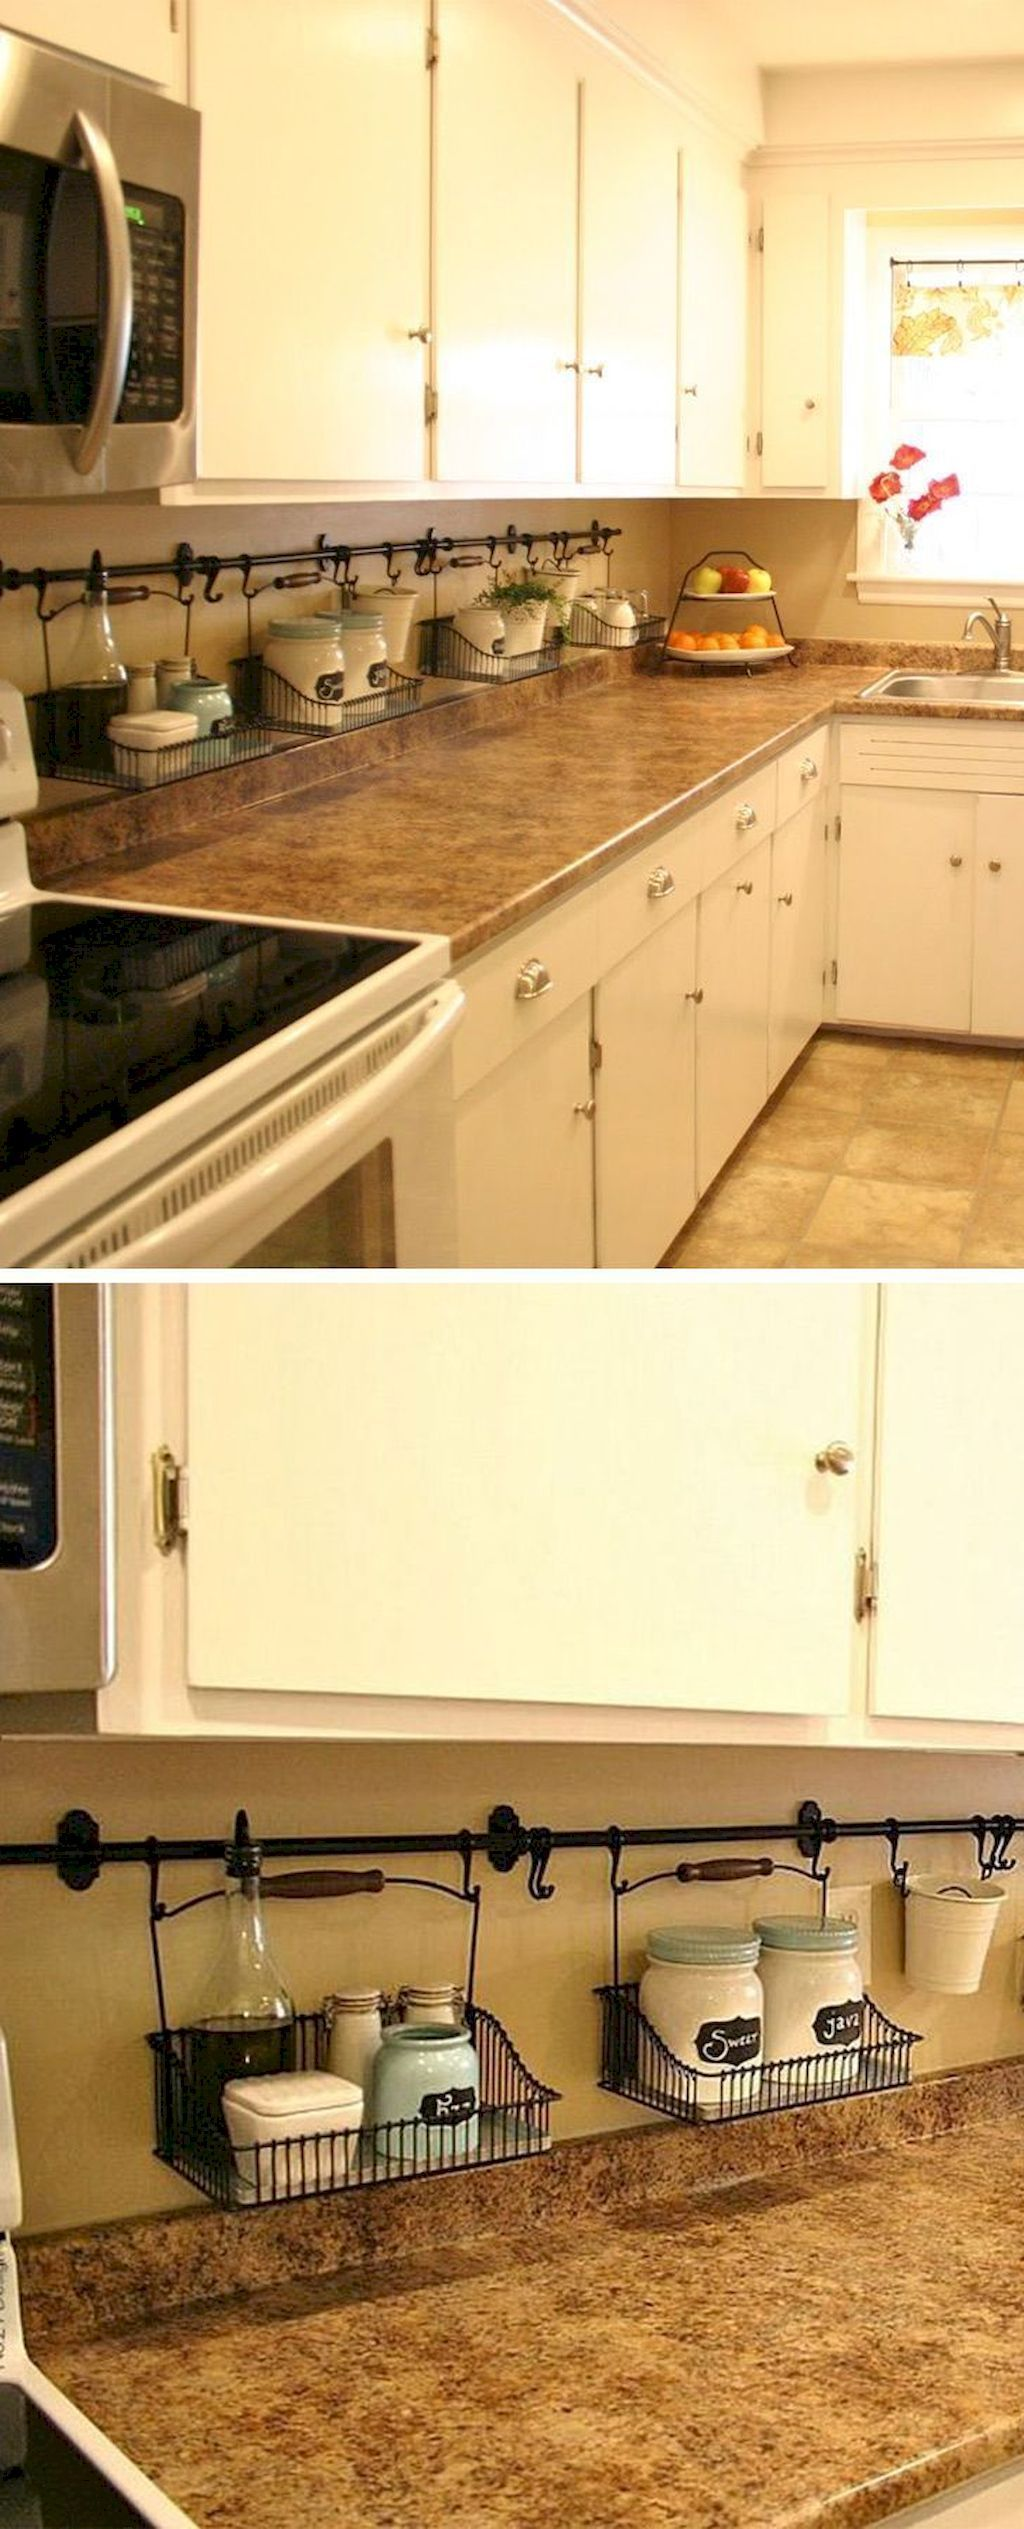 Awesome 55 Clever Small Apartment Hacks and Organization Ideas ...